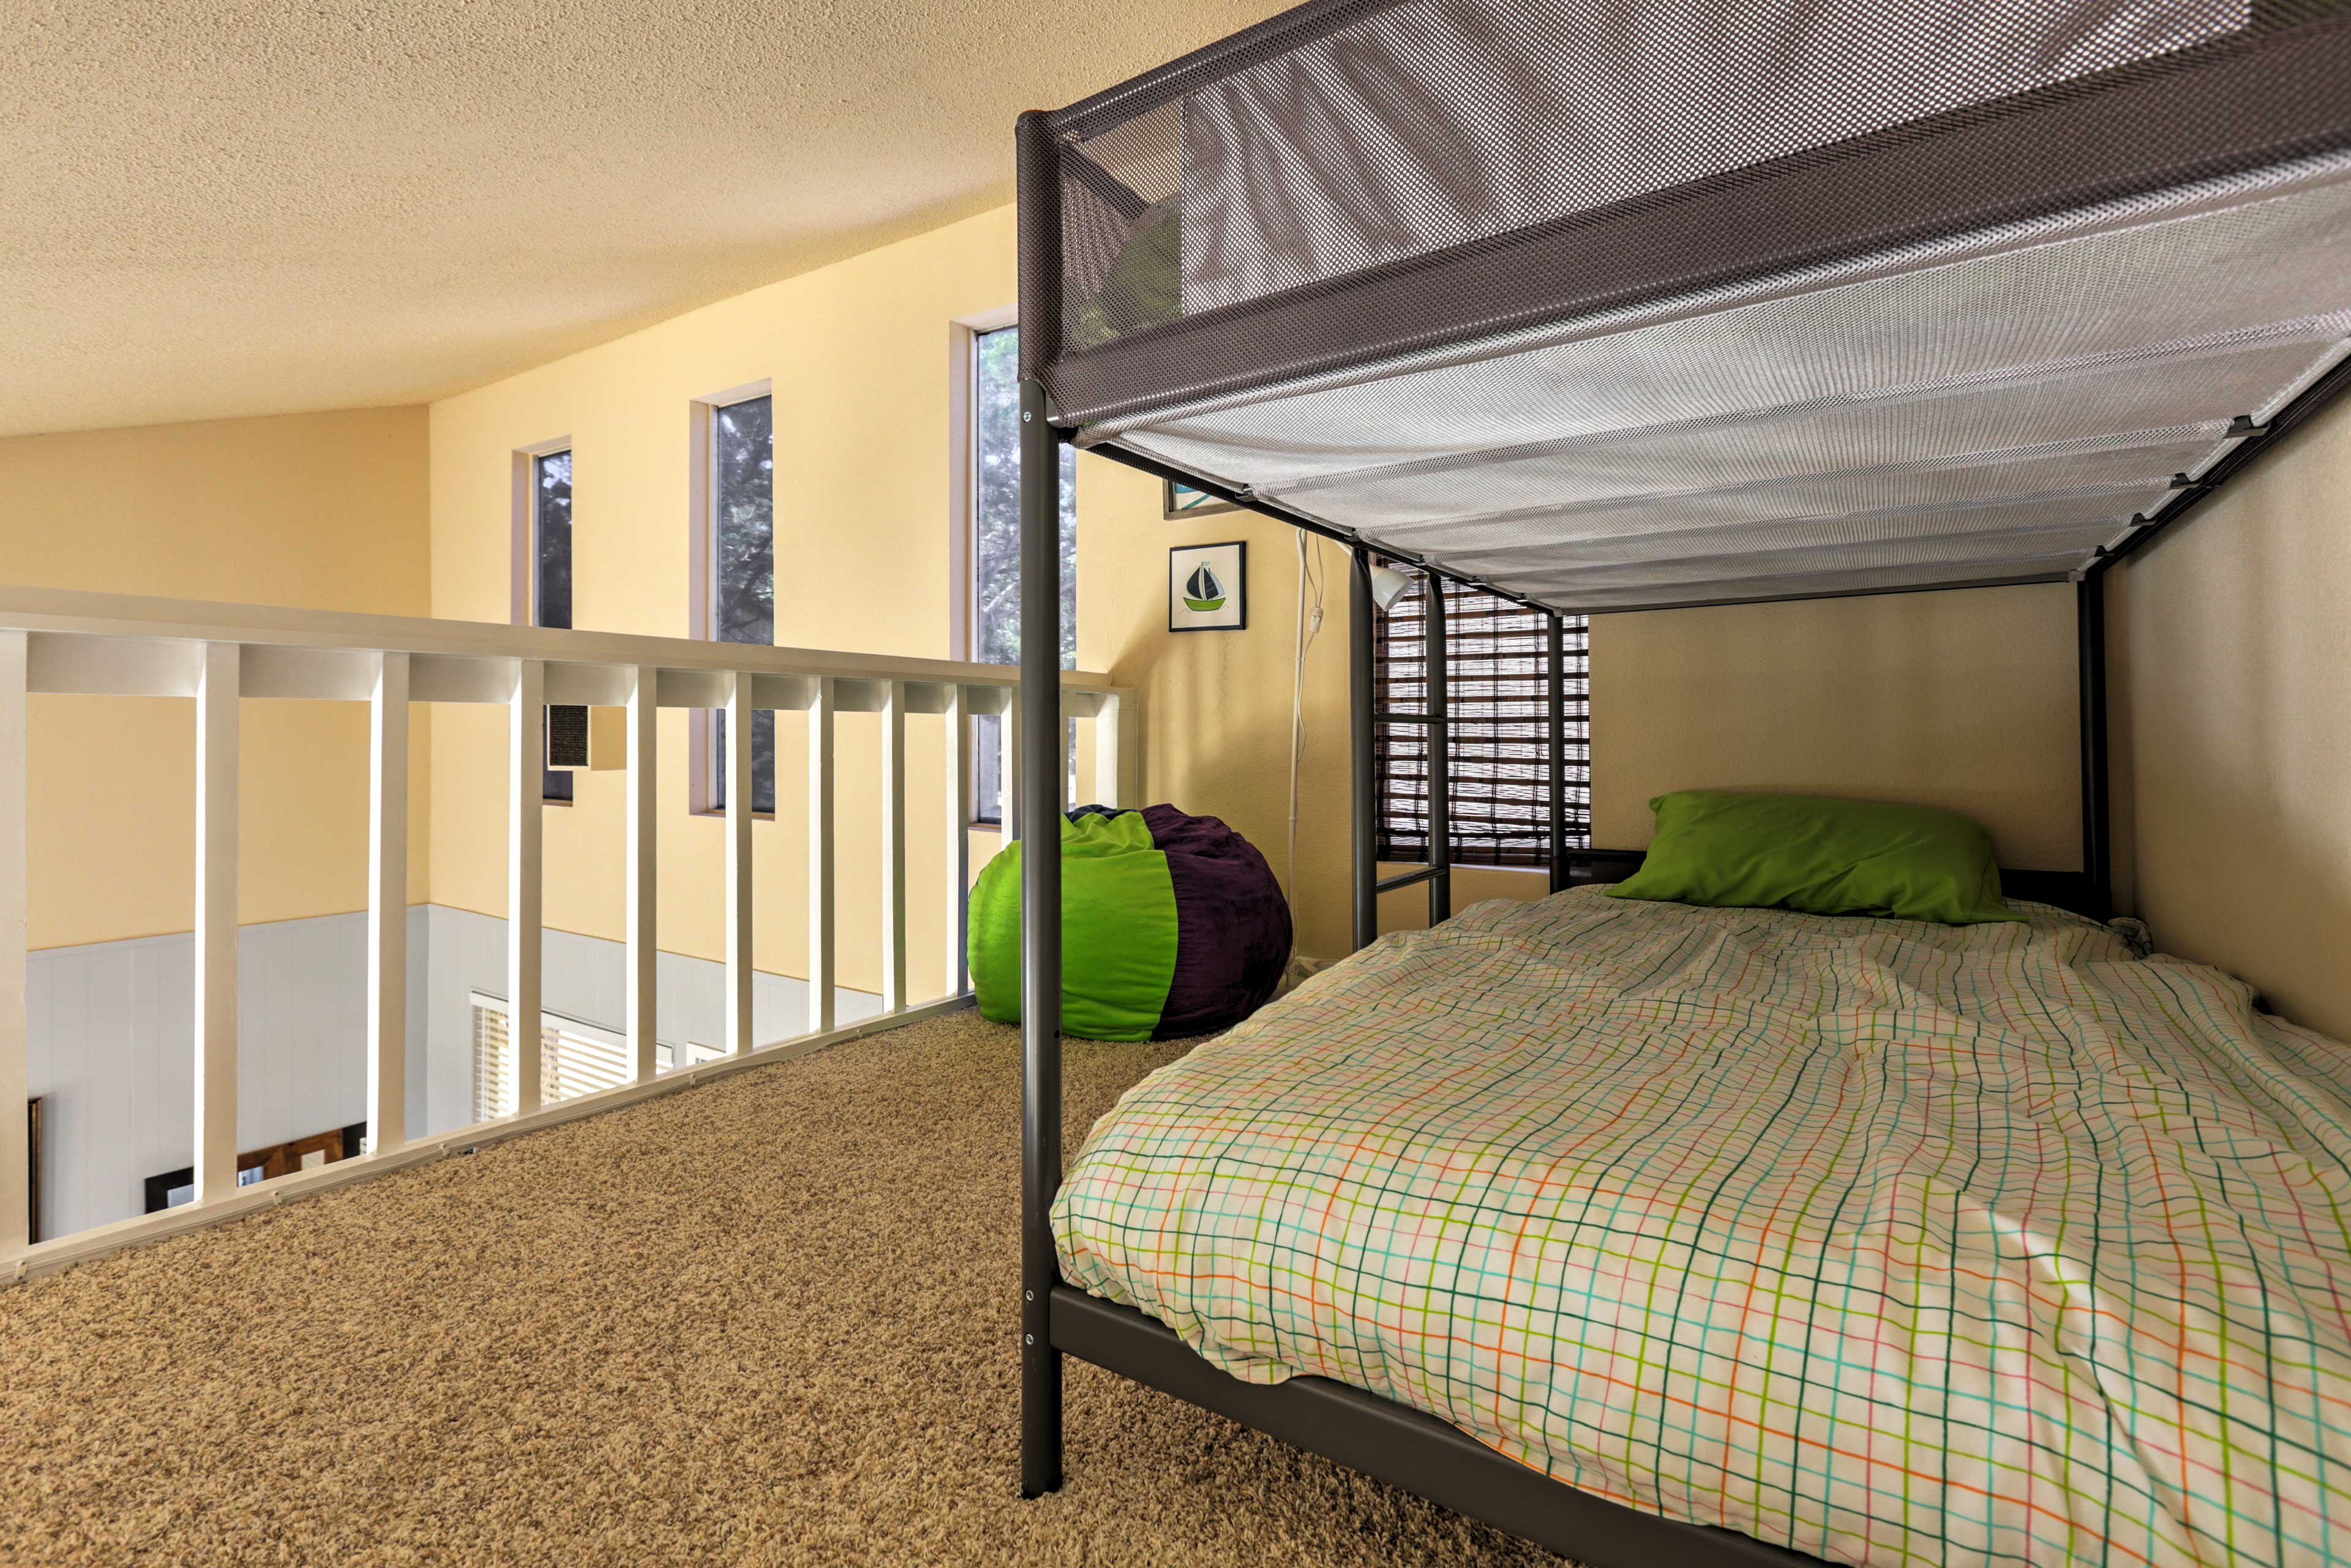 The loft has a twin-over-twin bunk bed, perfect for kids!